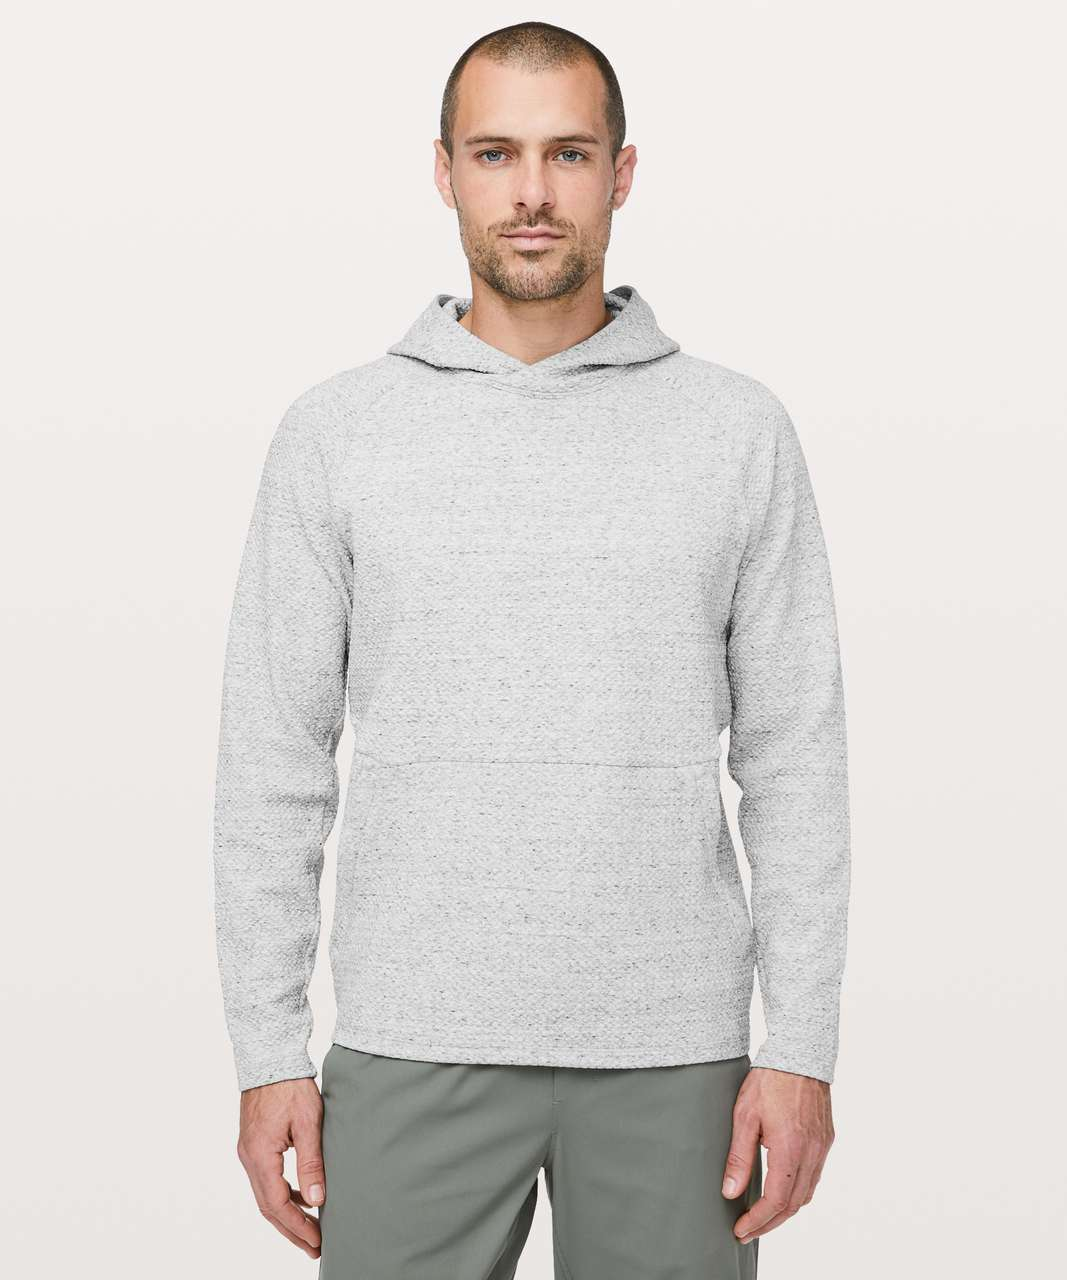 Lululemon At Ease Hoodie - Heathered Melody Light Grey / Black